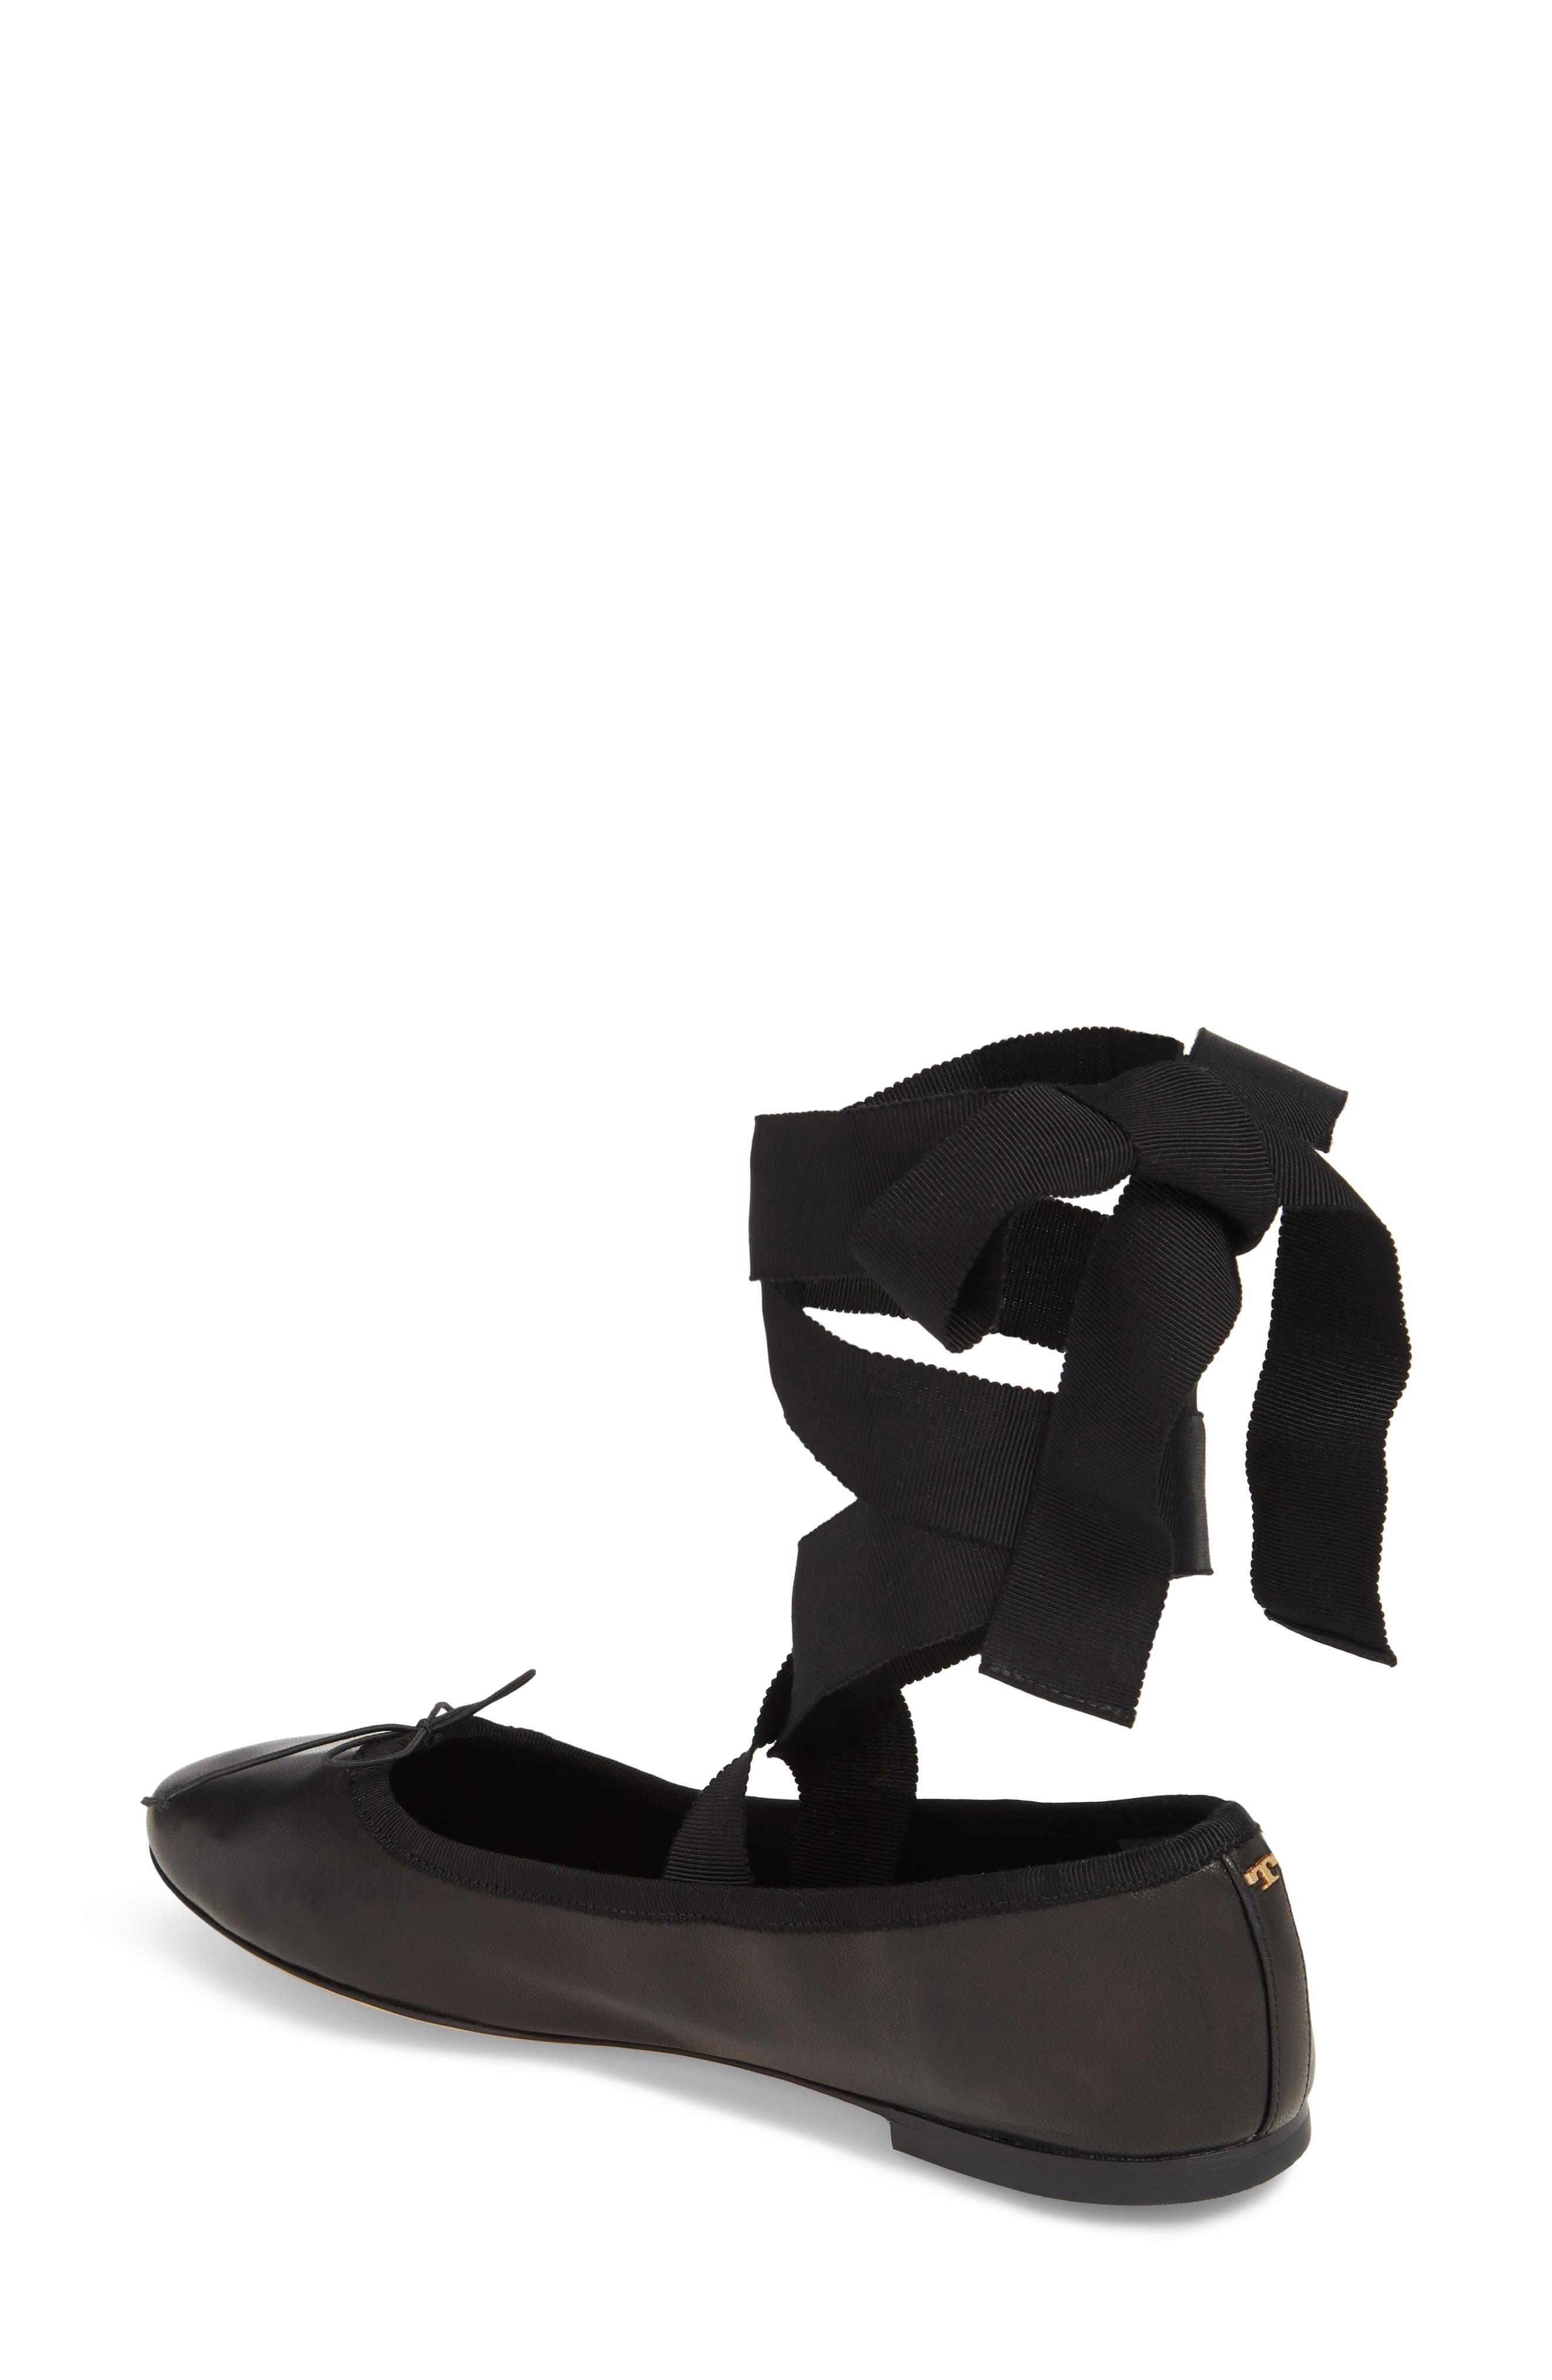 Elodie Lace-Up Ballet Flat,                             Alternate thumbnail 2, color,                             Perfect Black